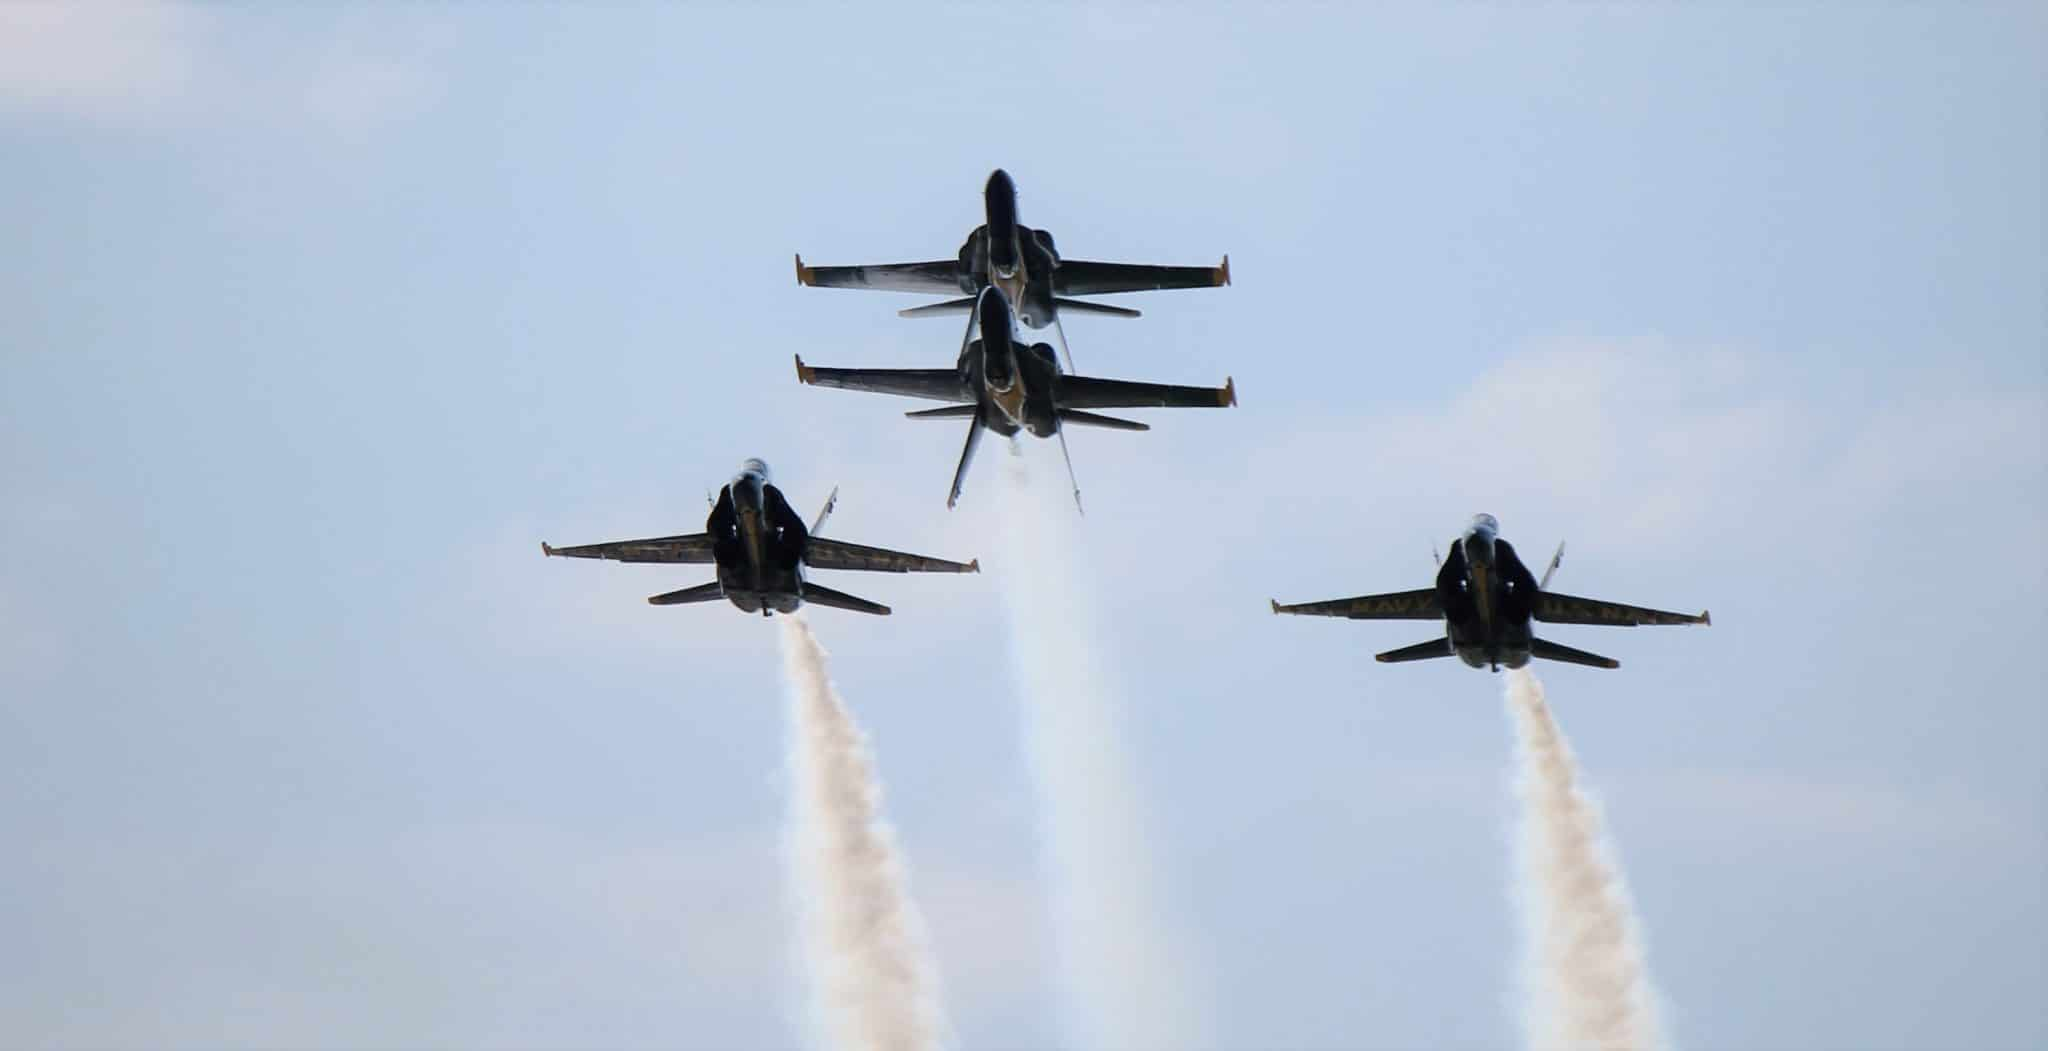 The Blue Angels are coming back to KC in 2019